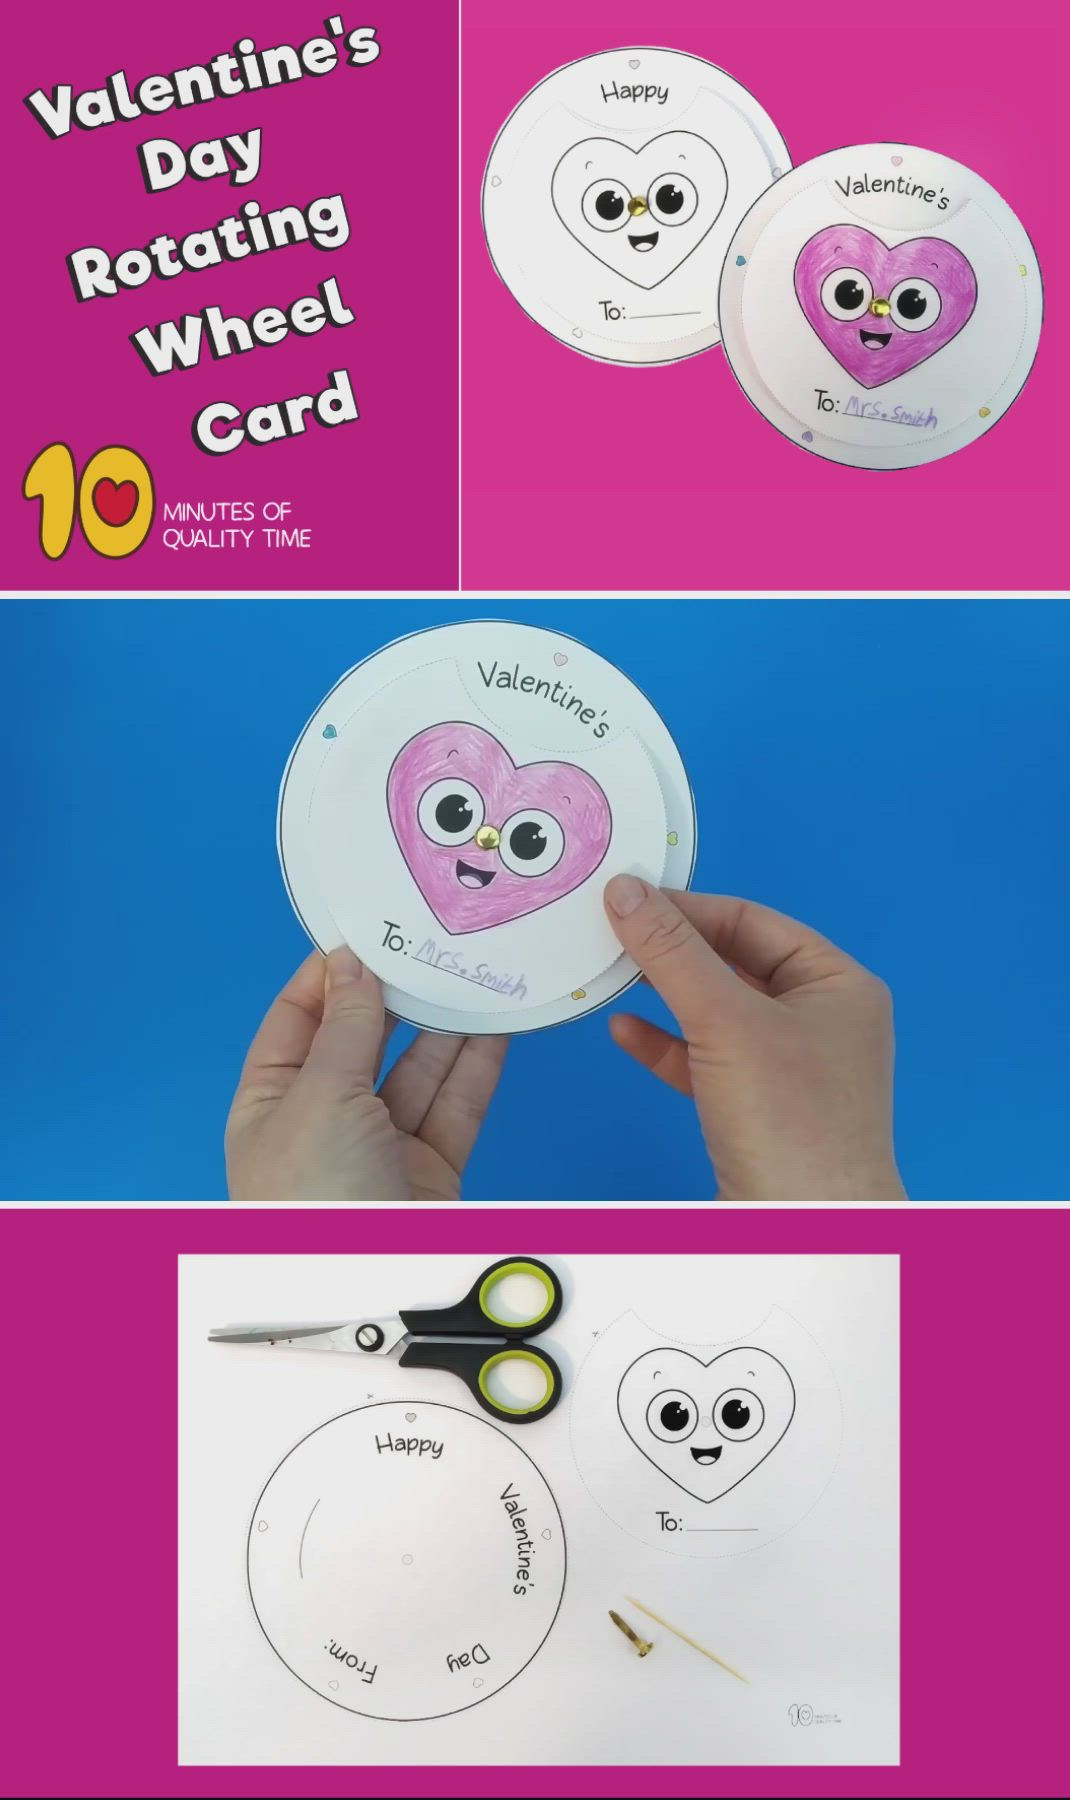 Valentine S Day Rotating Wheel Card Video Diy Valentine S Cards Valentine S Day Crafts For Kids Cards